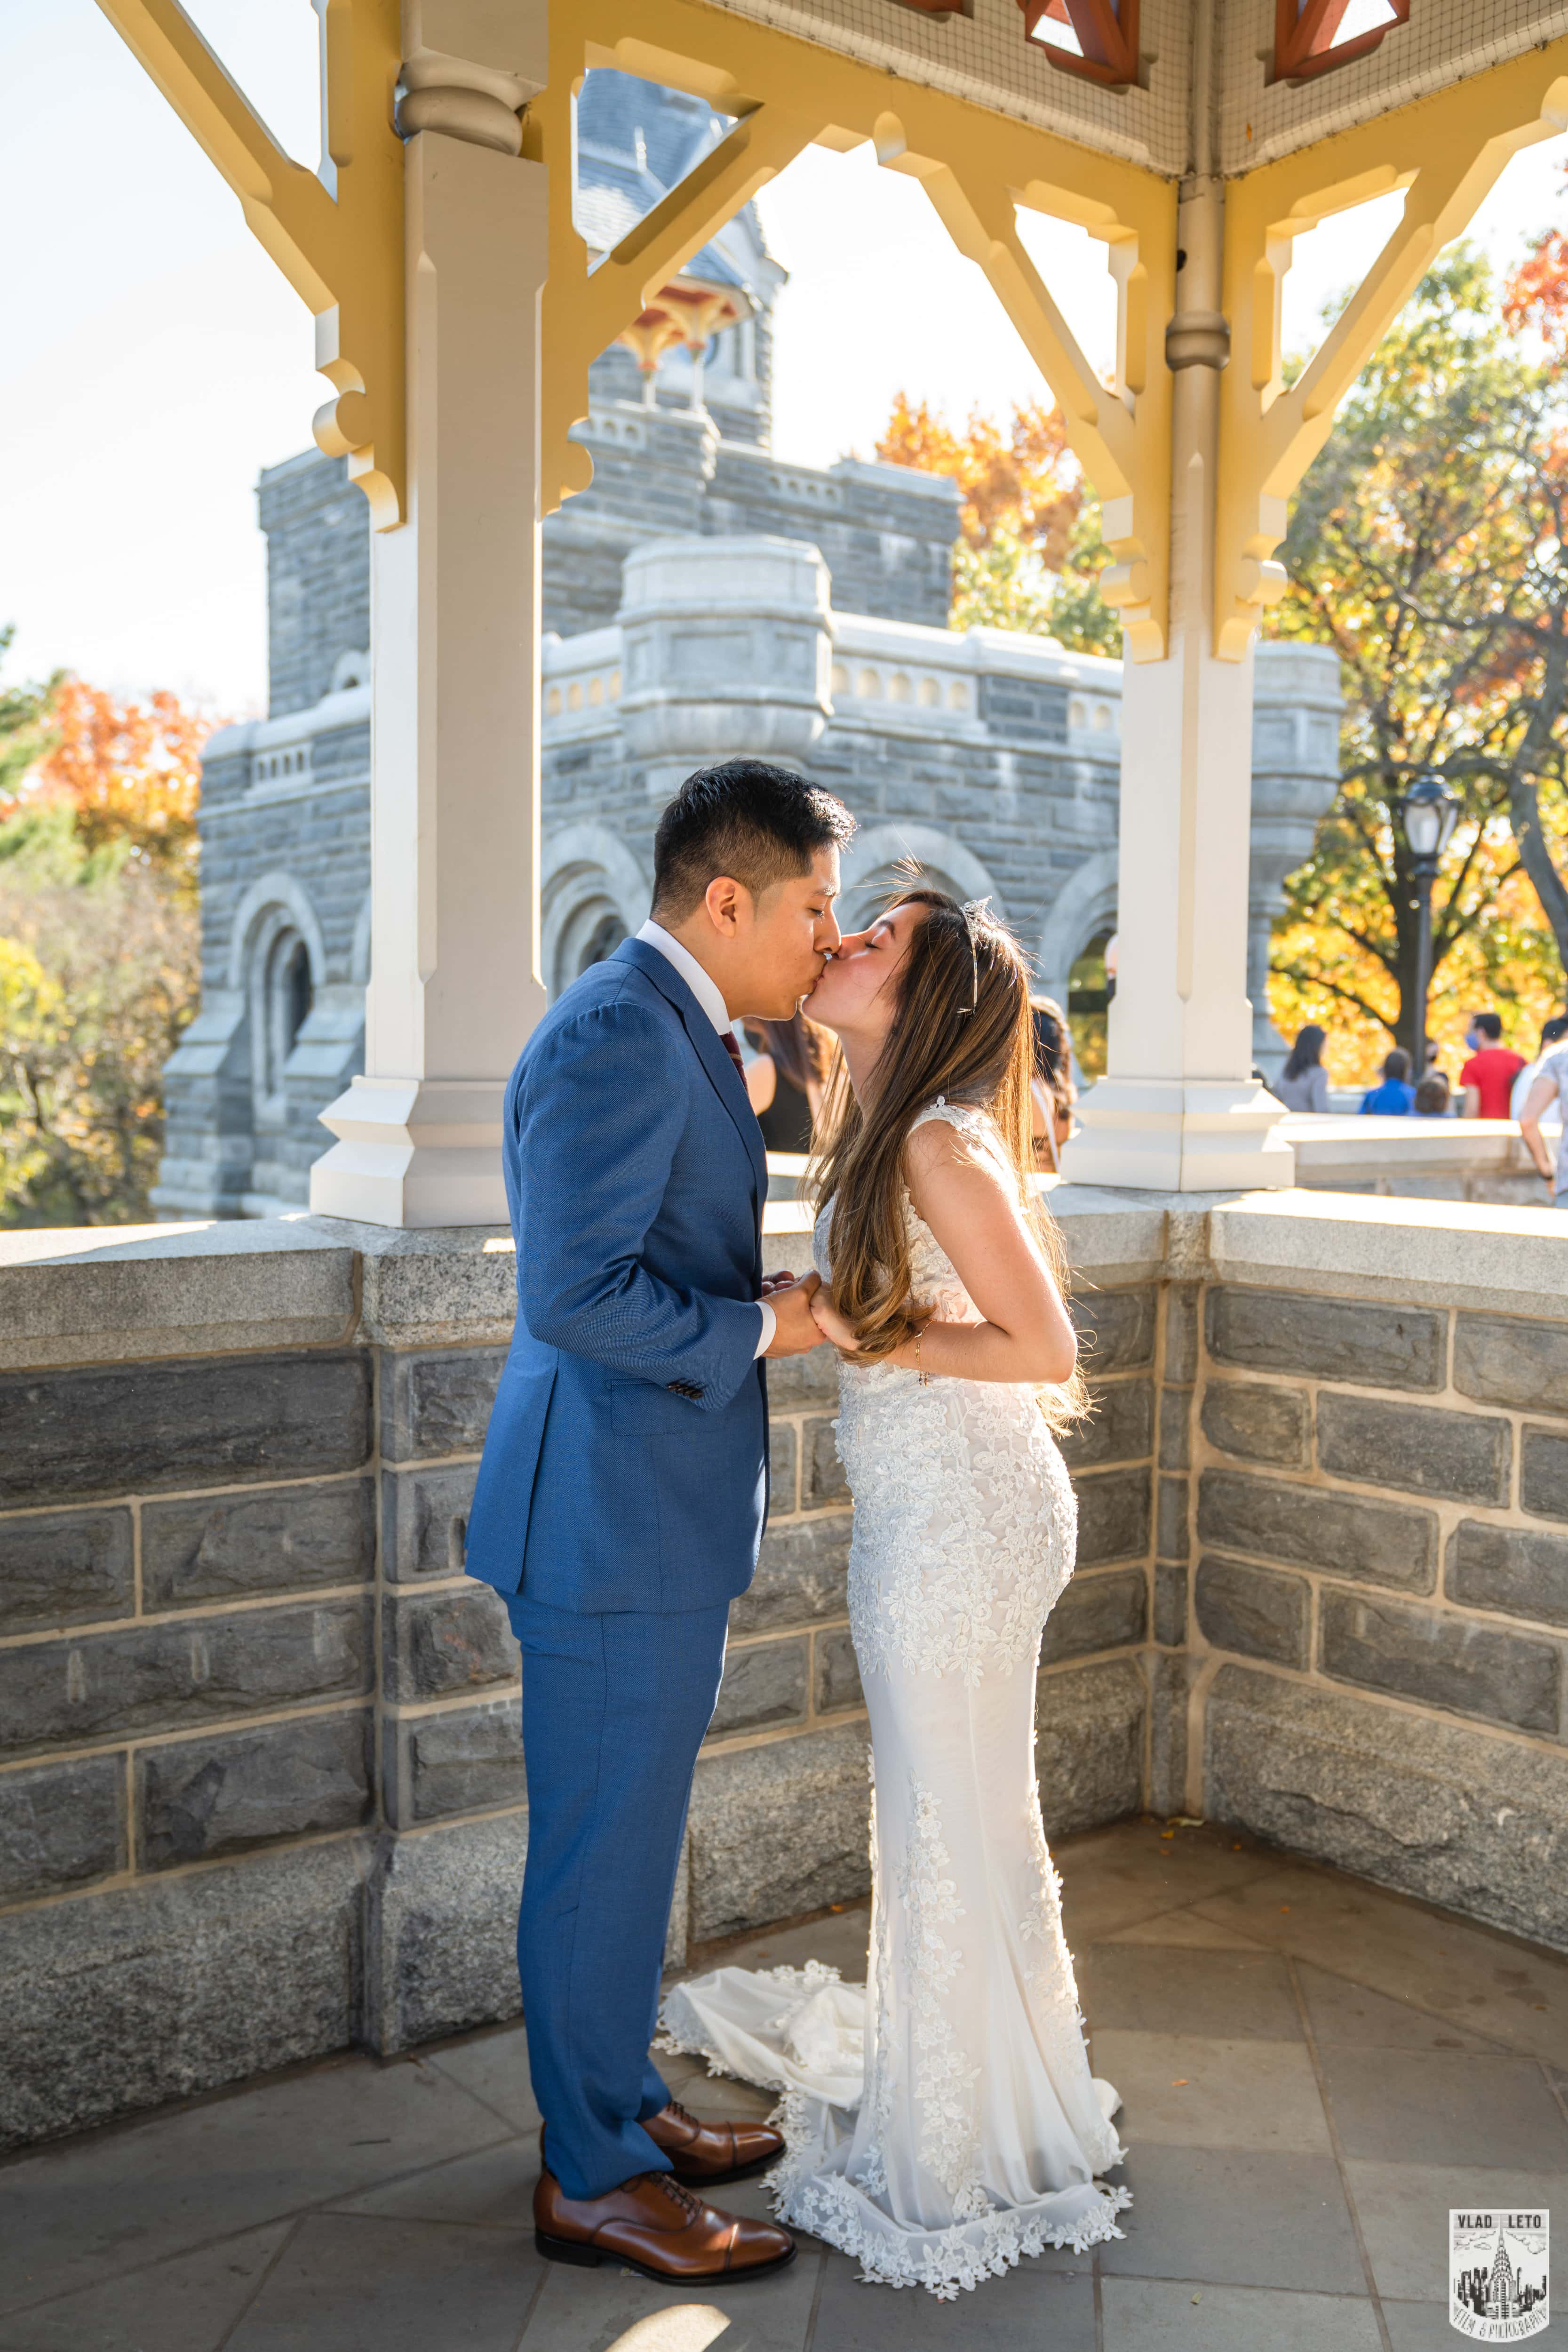 Photo 13 Francisco and Maria wedding ceremony at the Belvedere Castle